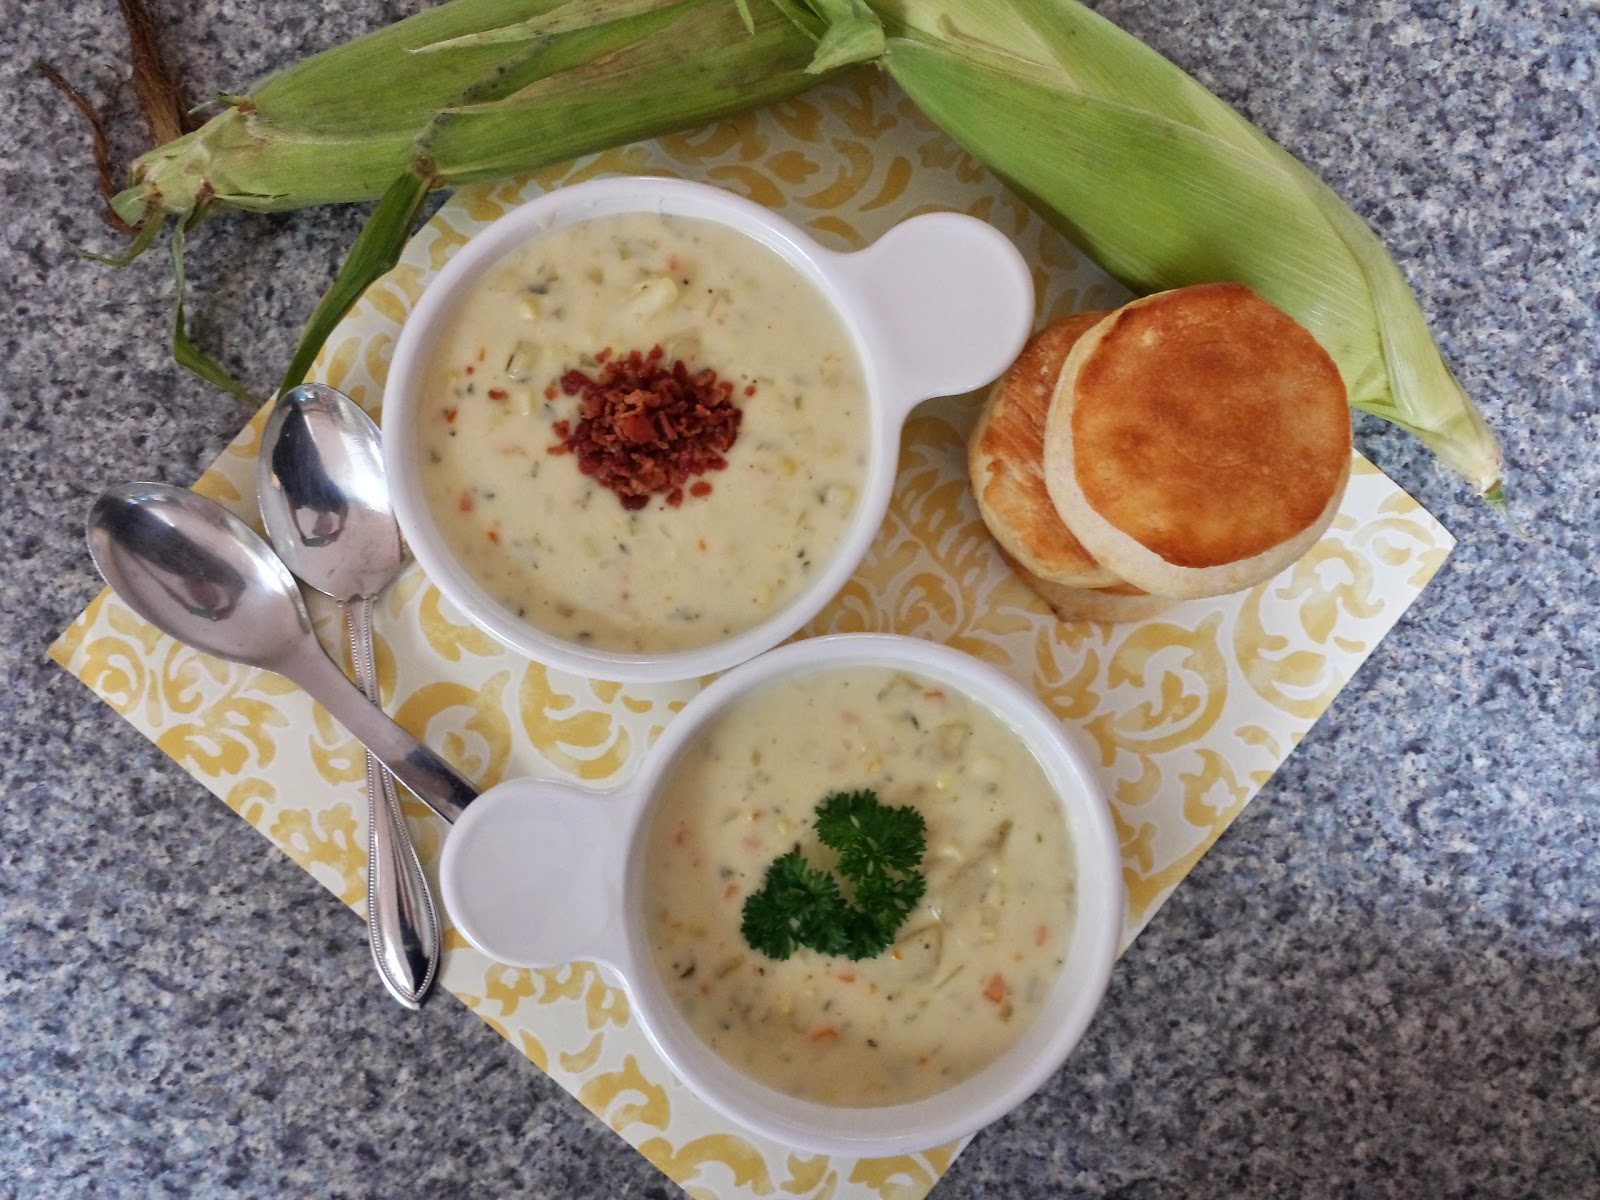 corn chowder with biscuits